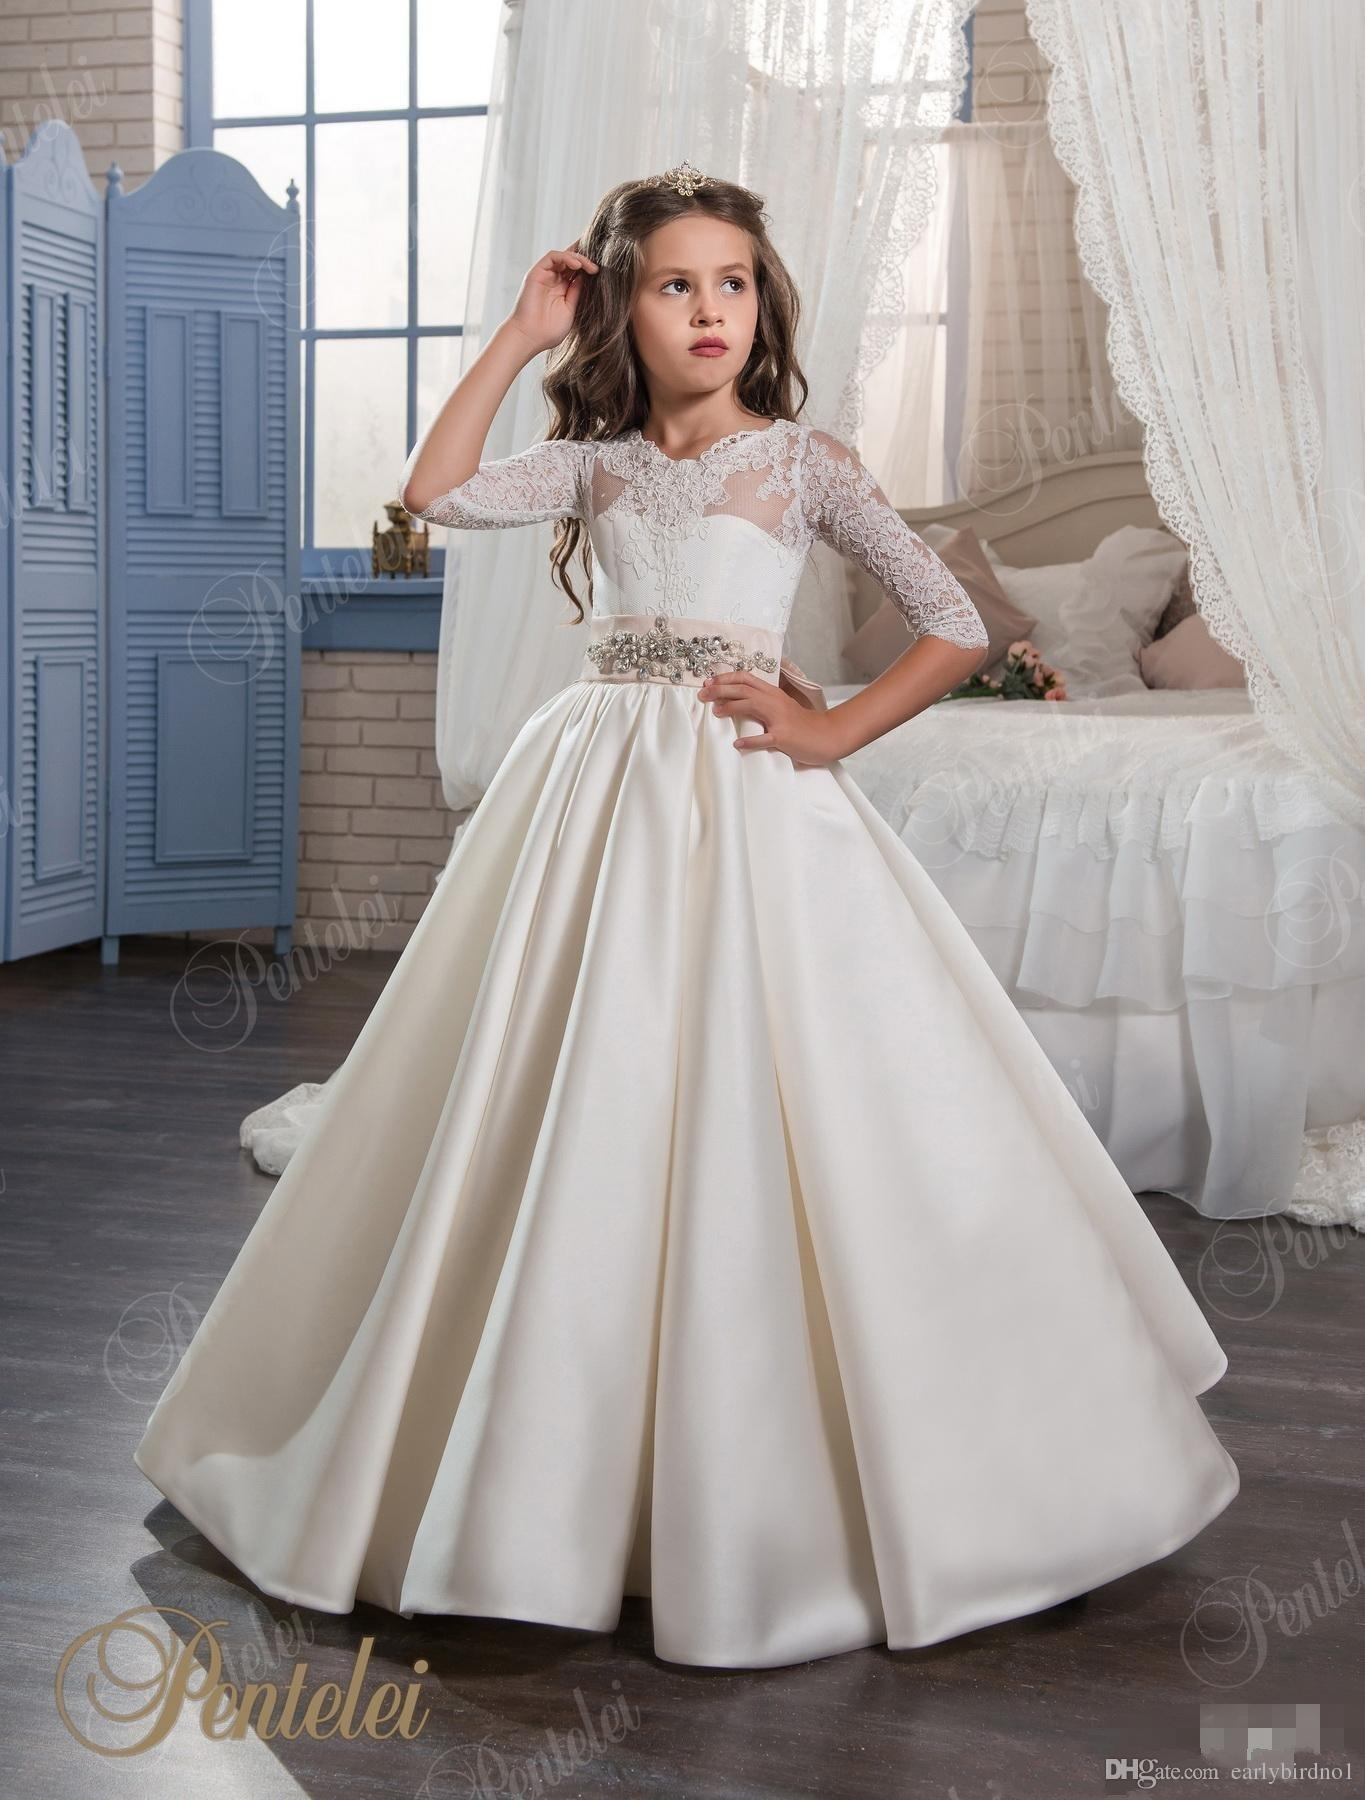 Global brand of women fashion, proud in exquisitely hand made flower girl, bridesmaid, wedding and prom dresses. Currently in North America and East Asia.